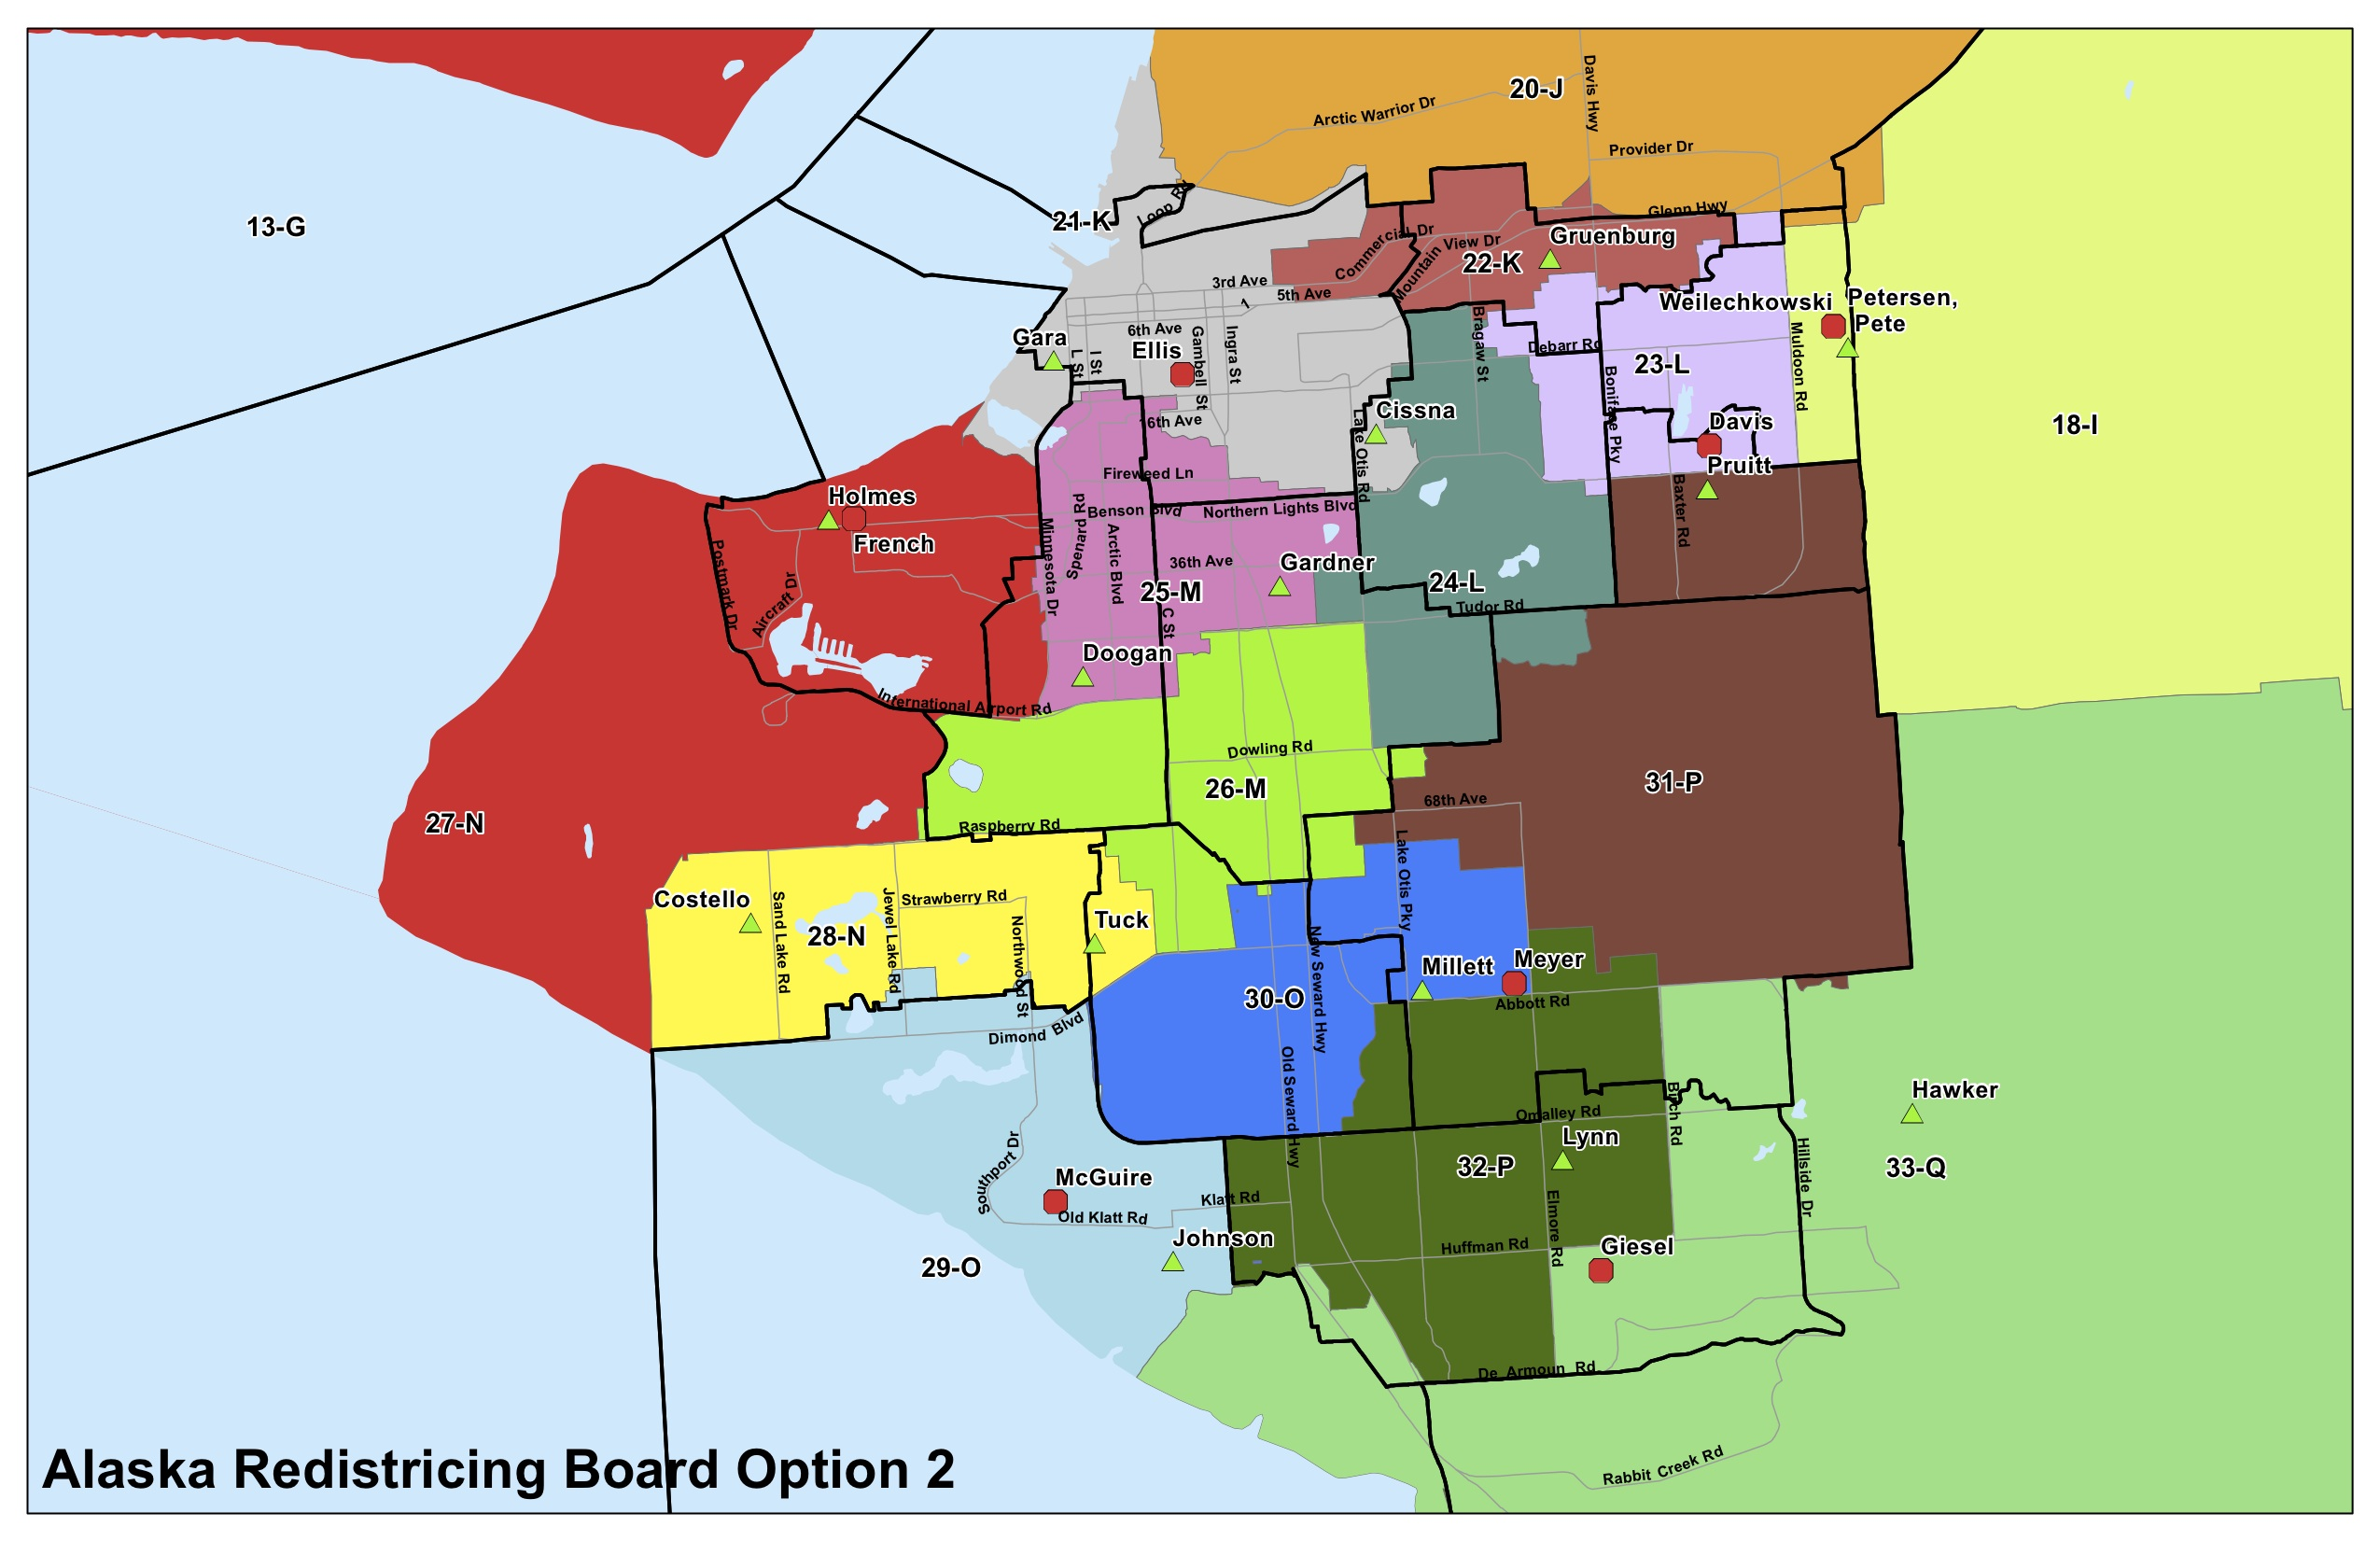 Alaska Redistricting Board Maps For Anchorage And